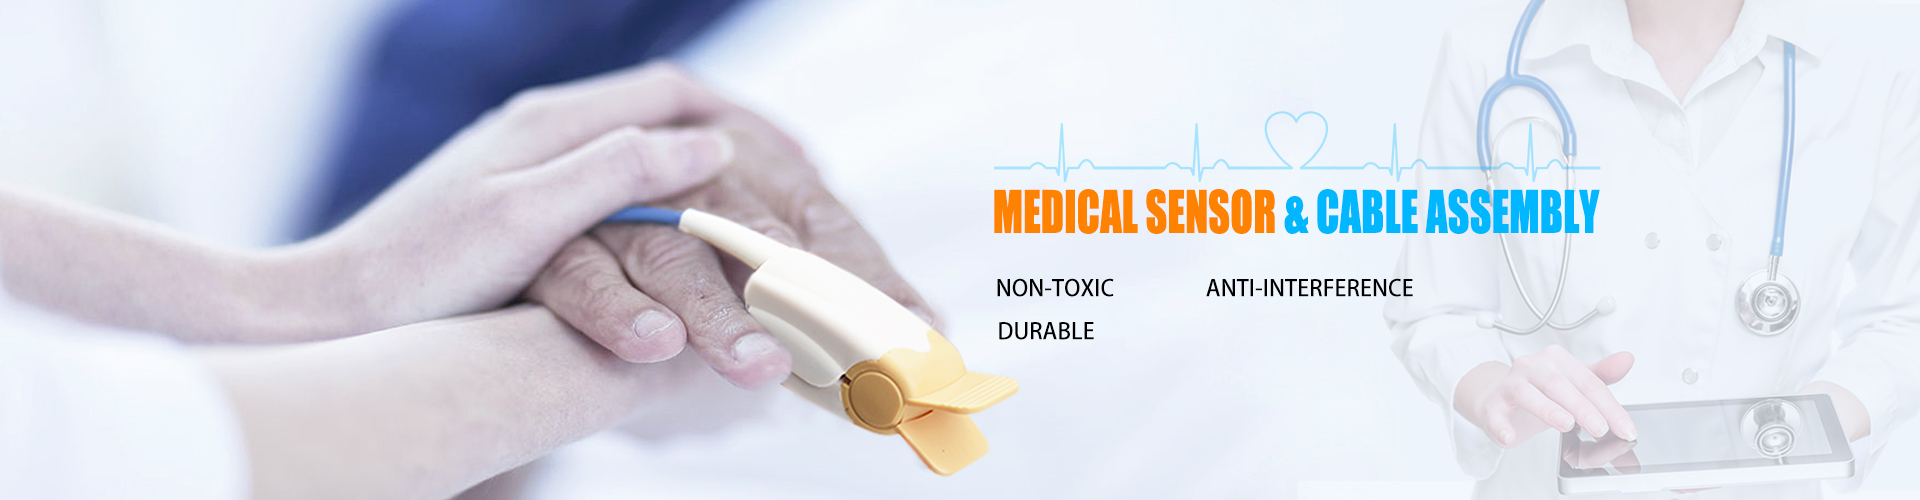 Medical sensor & cable assembly